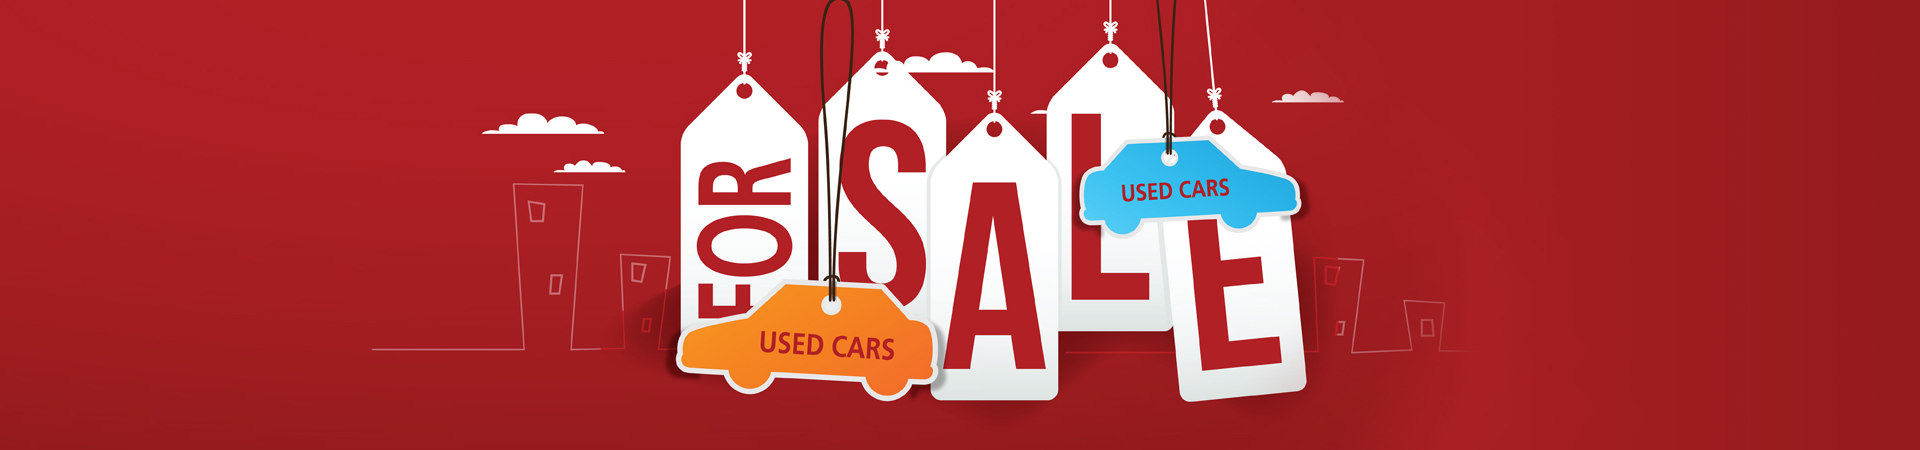 Used-Cars-For-Sale-Banner